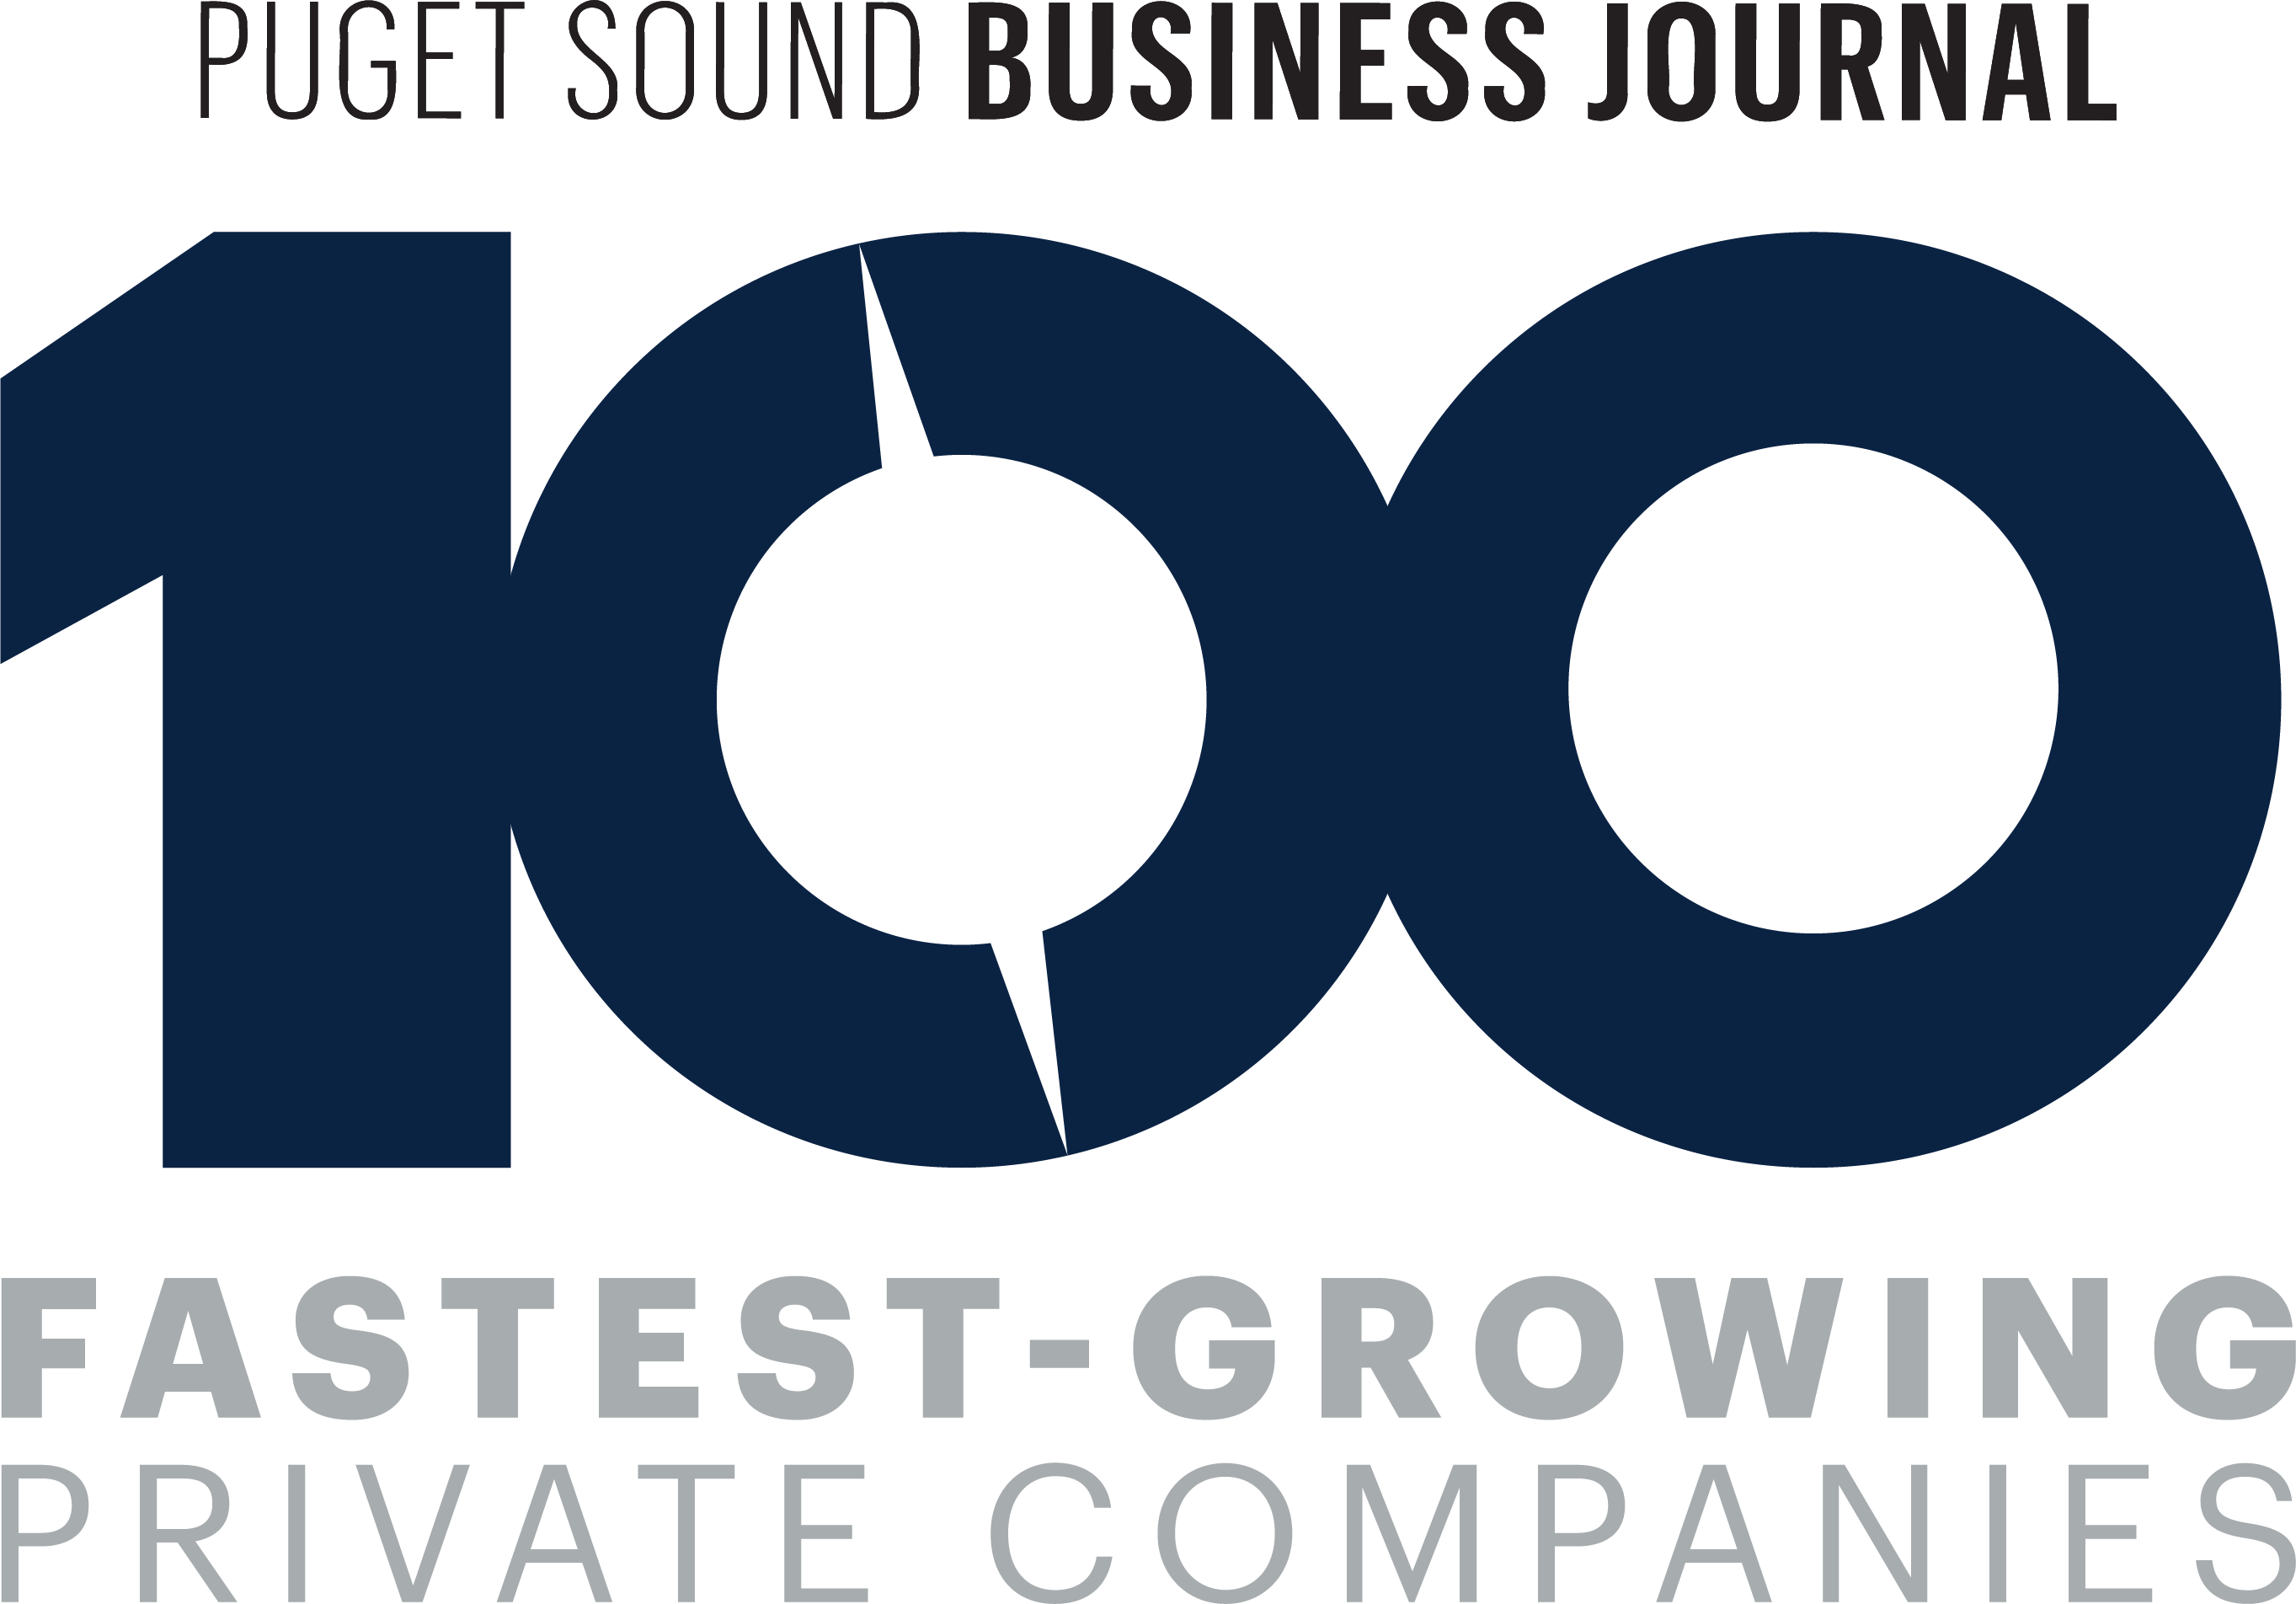 100 Fastest-Growing Private Companies